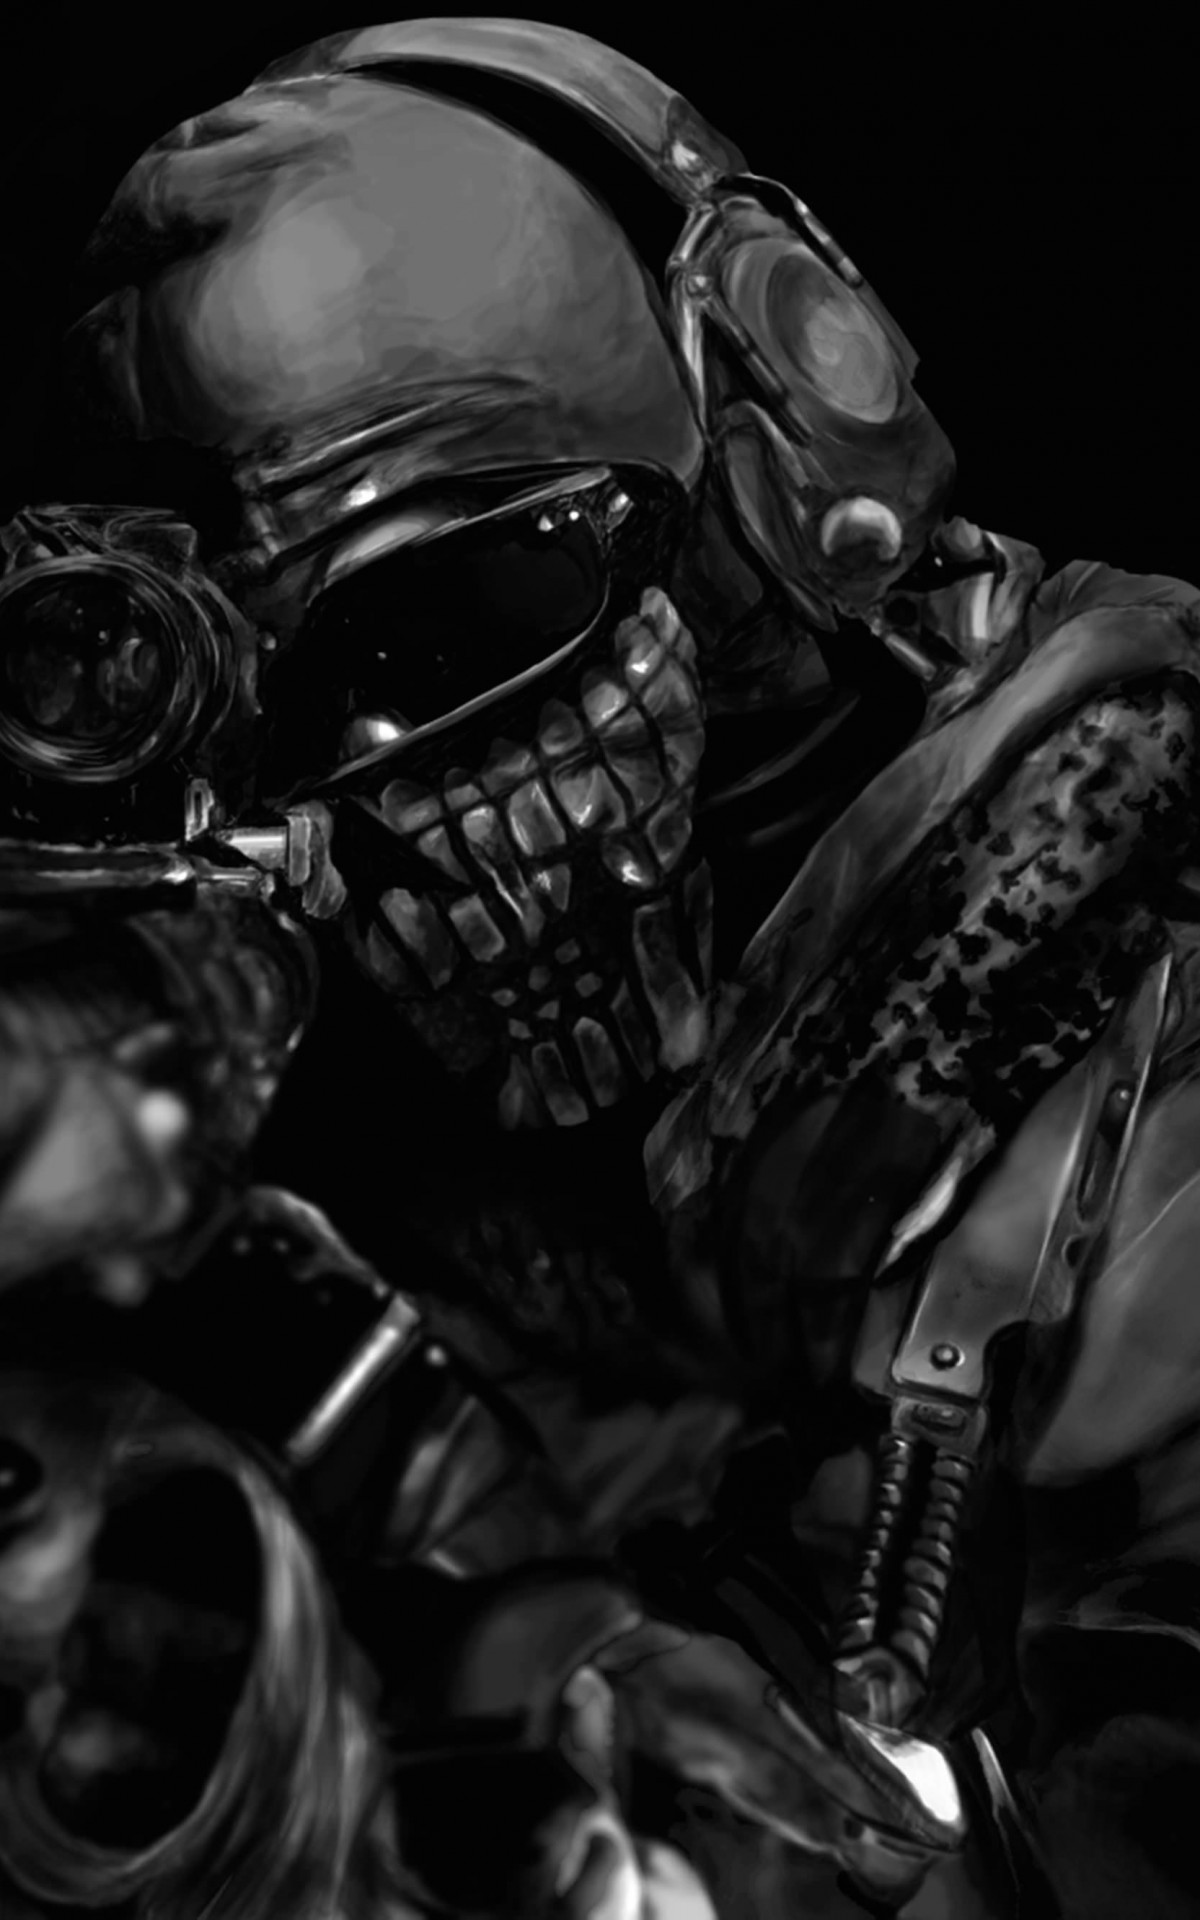 Call of Duty Ghost Masked Warrior Wallpaper for Amazon Kindle Fire HDX